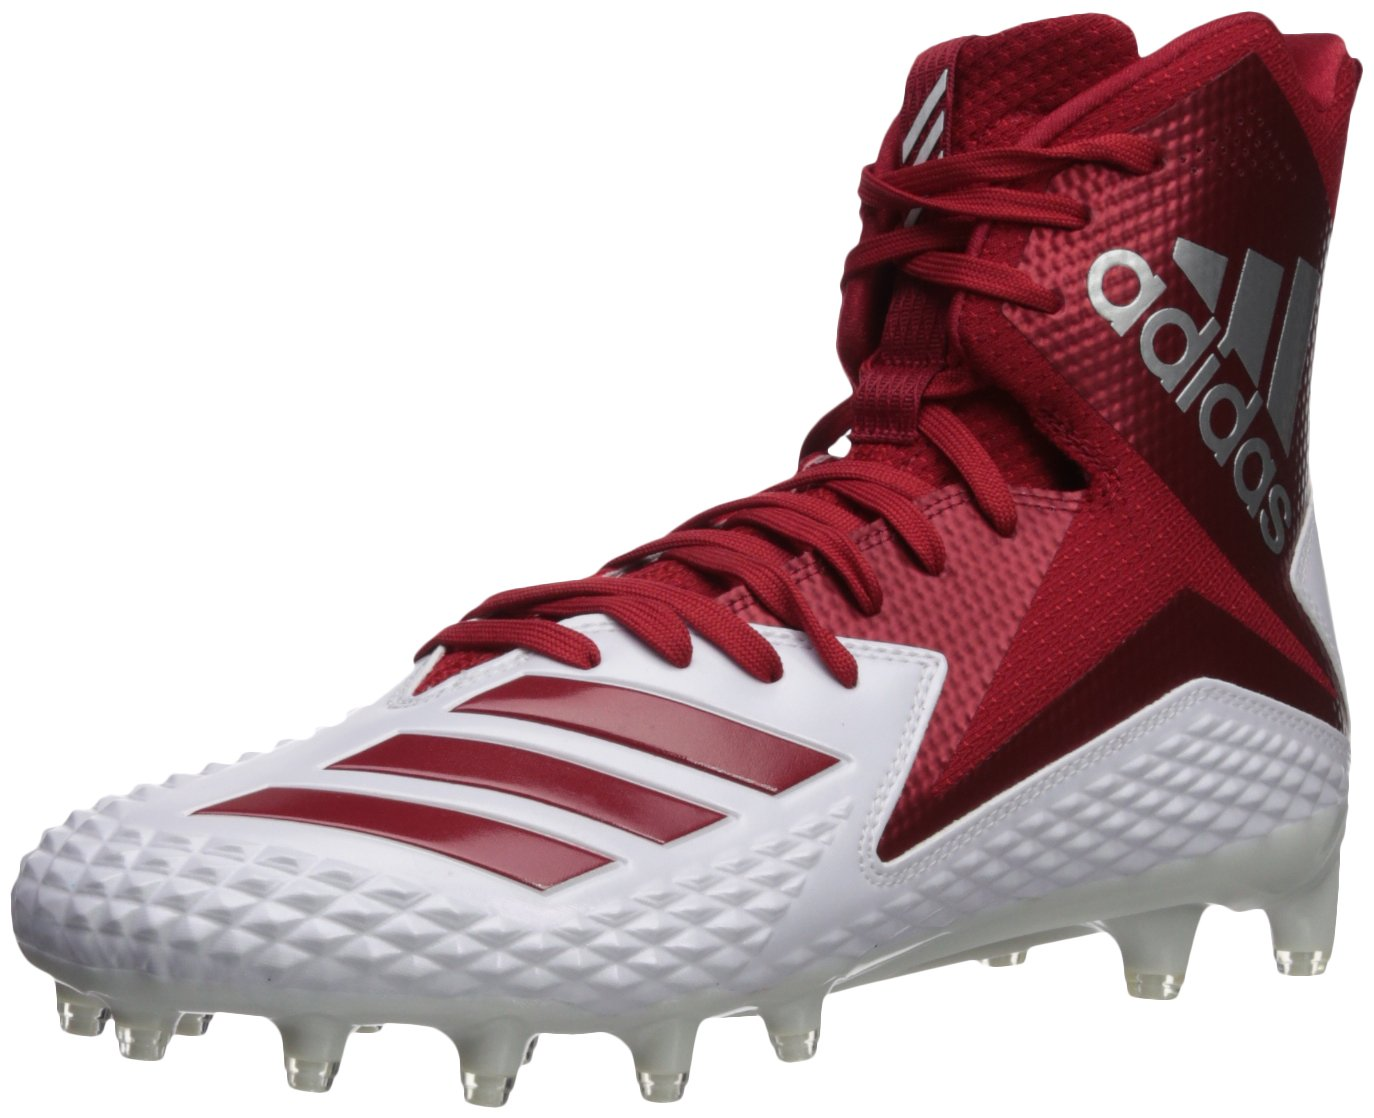 adidas Men's Freak X Carbon Mid Football Shoe B07234KWWY 9 D(M) US|White/Power Red/Power Red